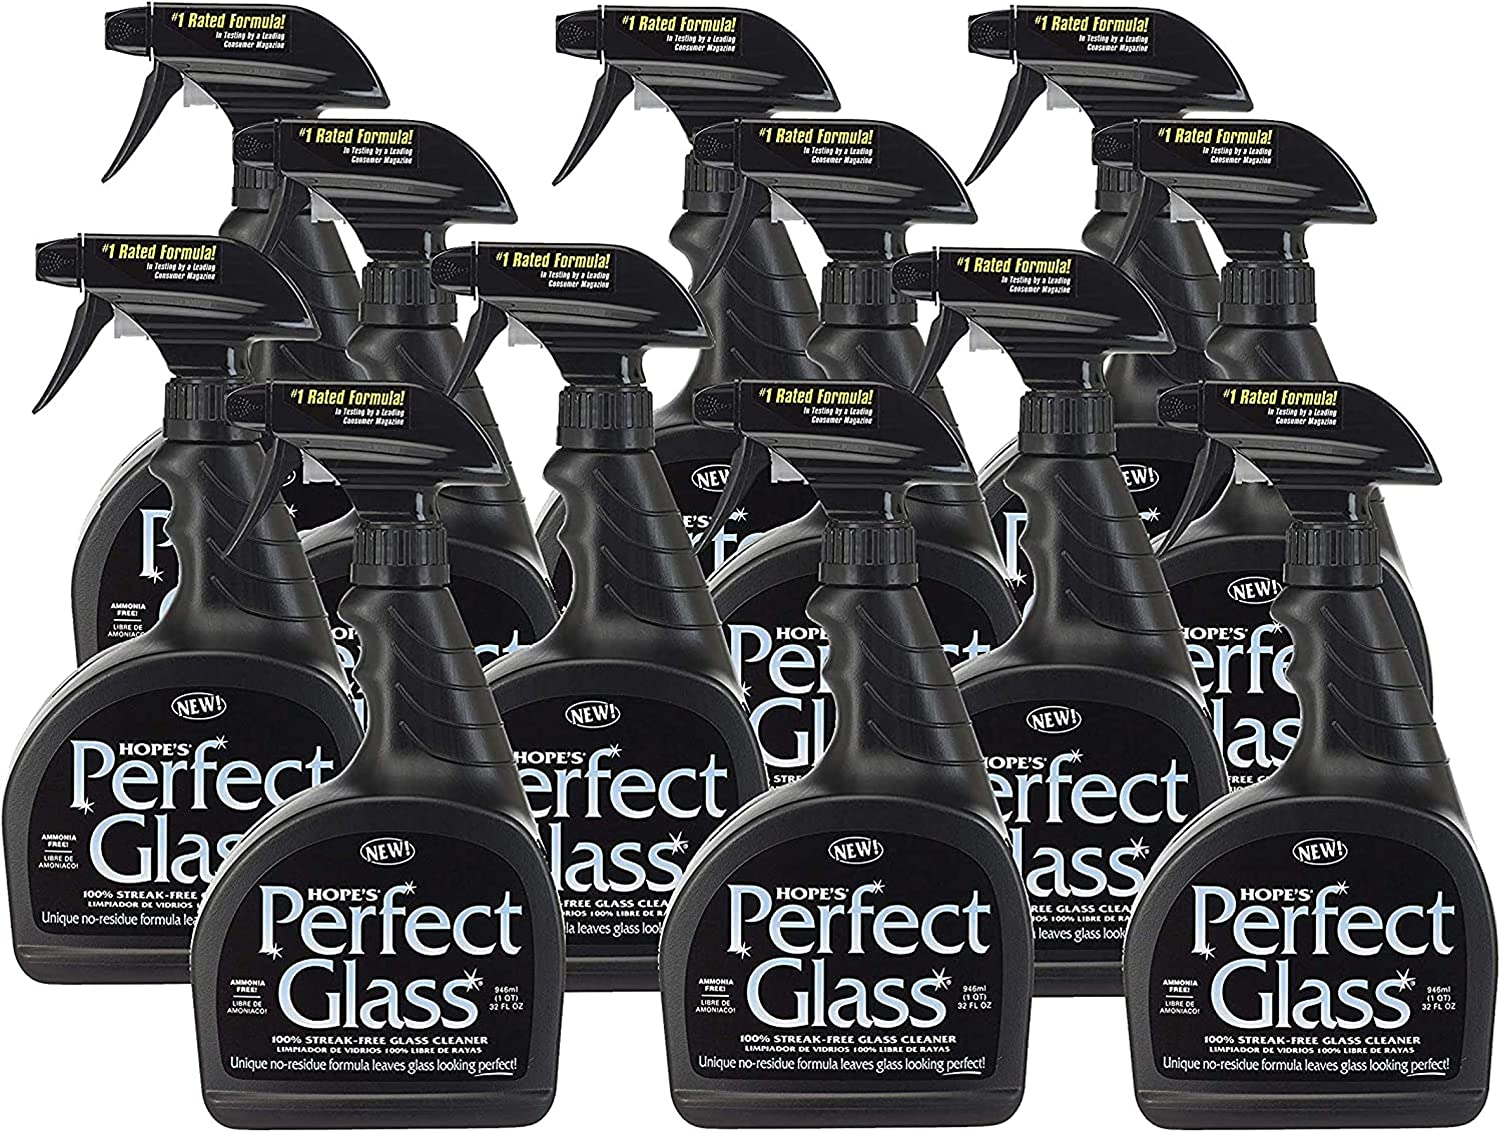 Chicago Mall HOPE'S Perfect Glass Cleaning Spray Top Max 82% OFF Cl Stove Mirror Window